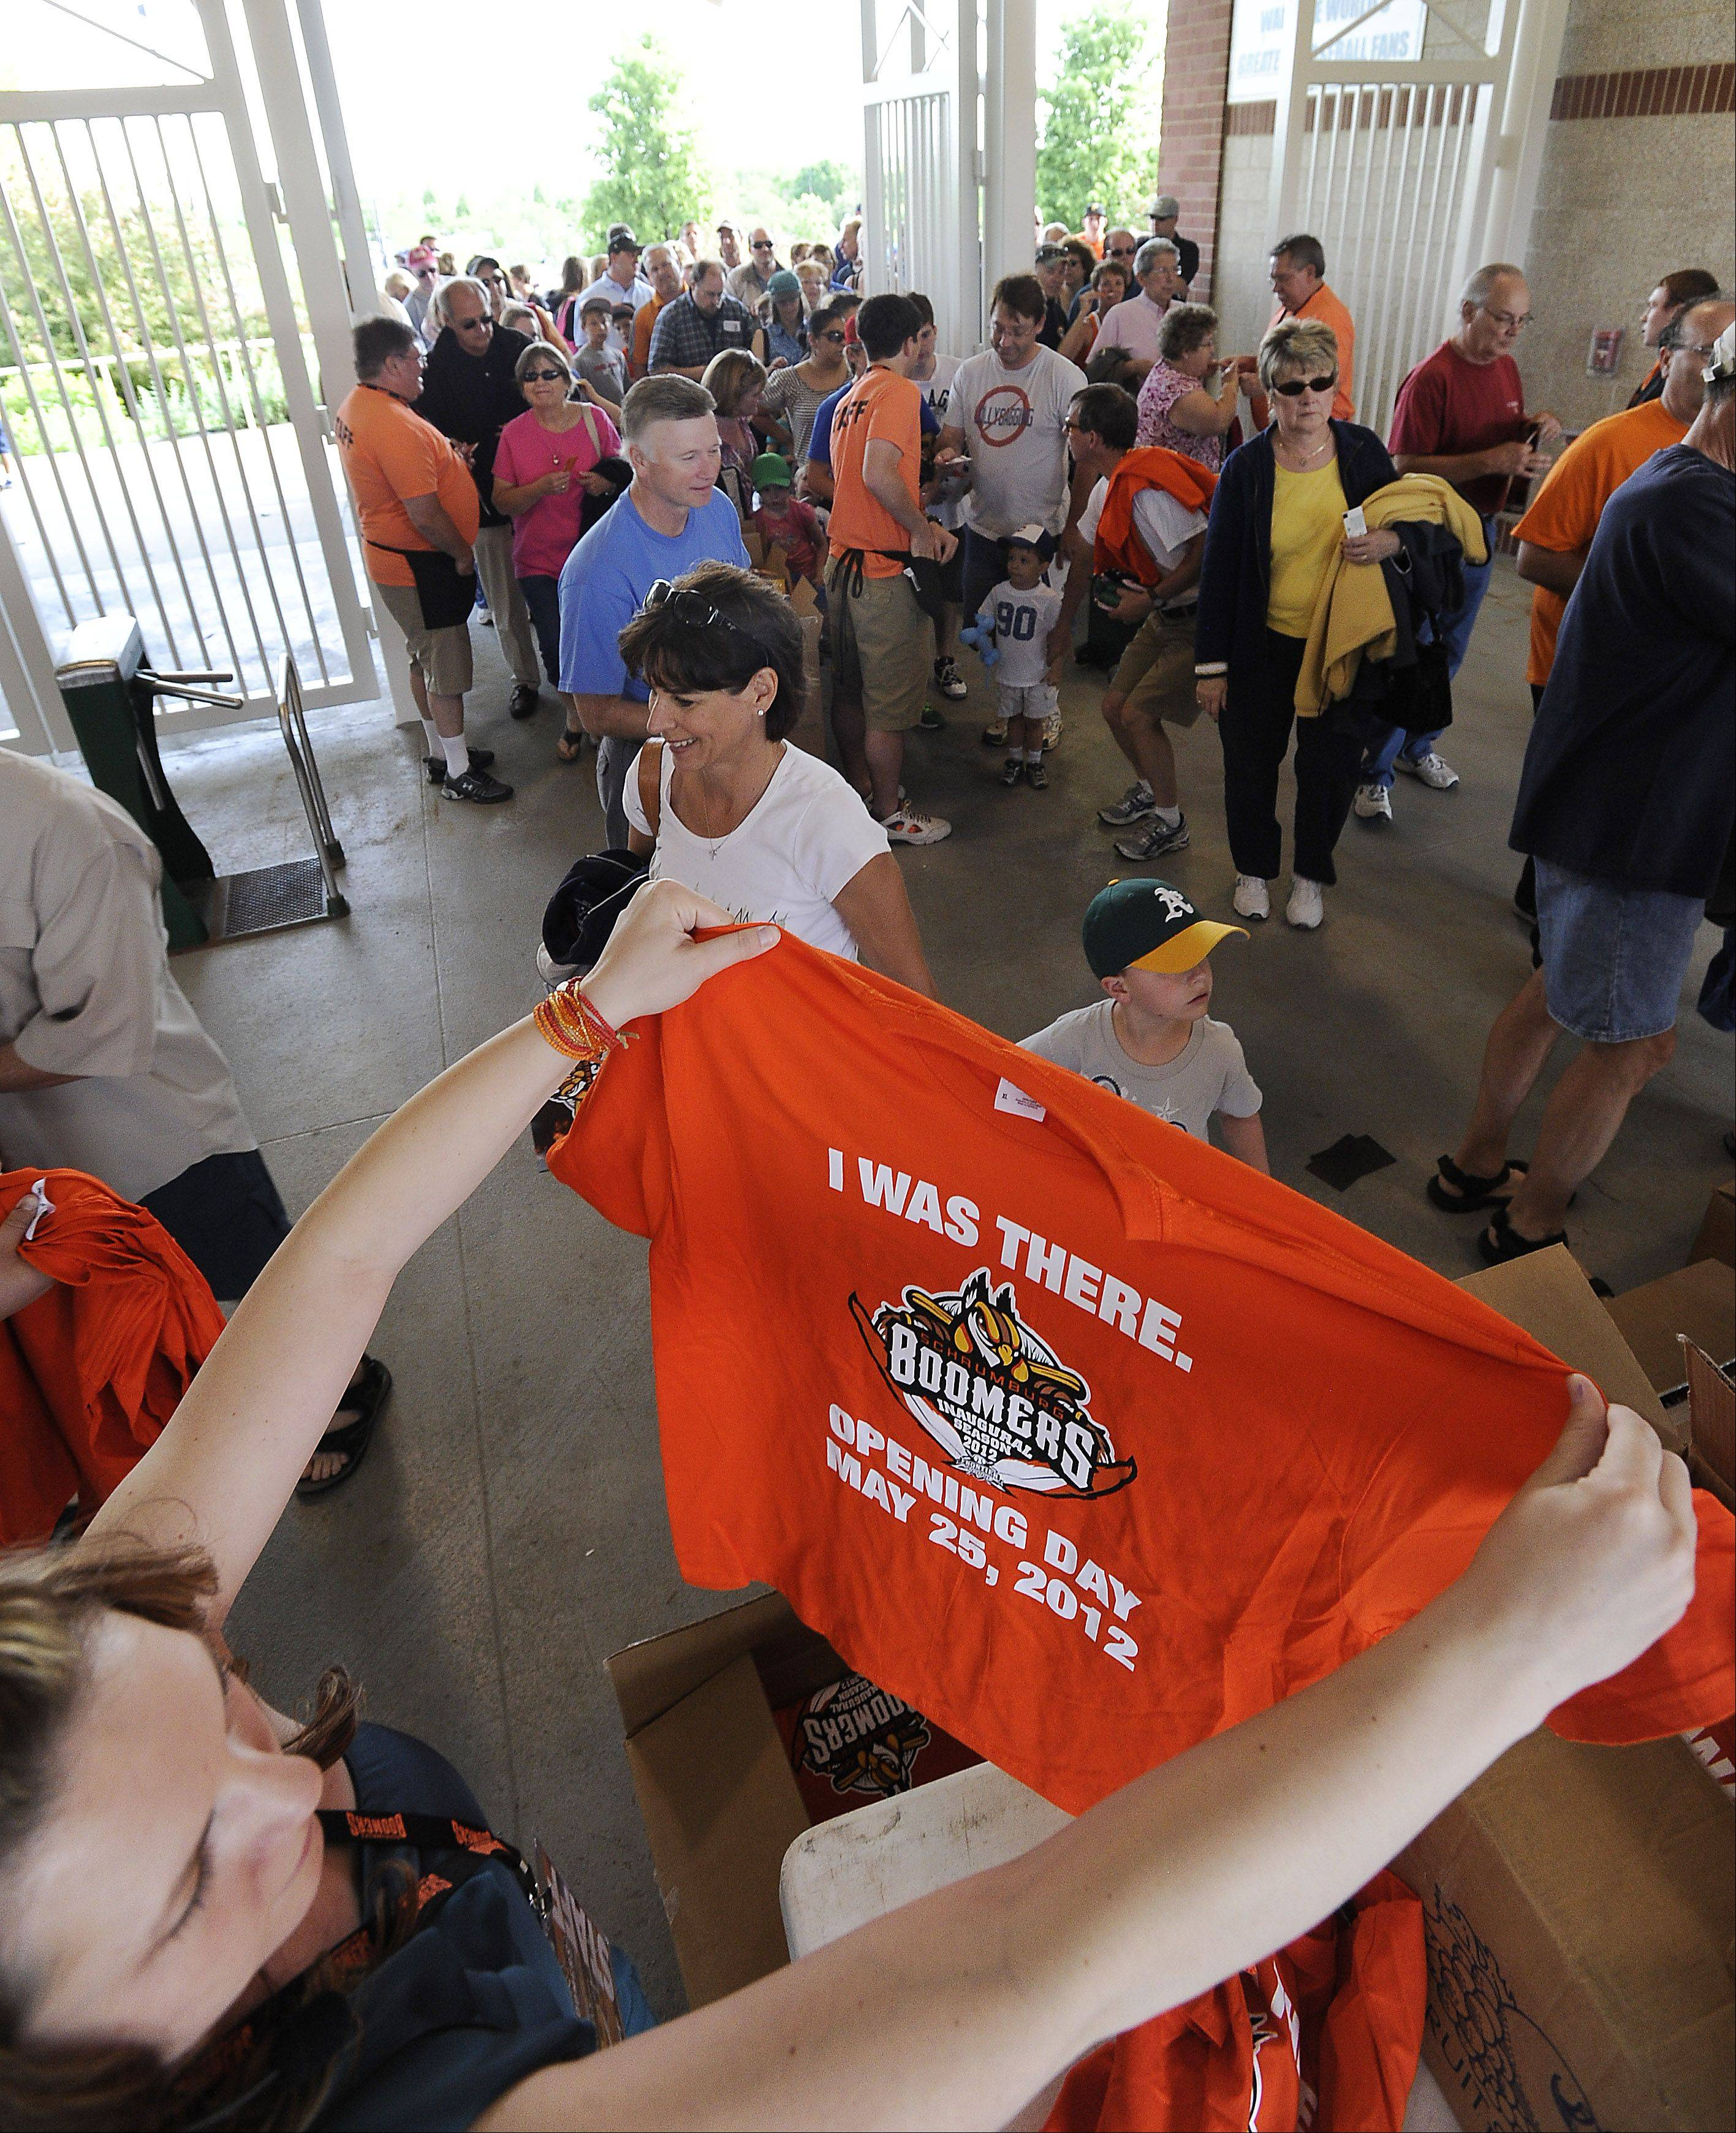 A Schaumburg Boomers fan looks over an opening day shirt that was given out.